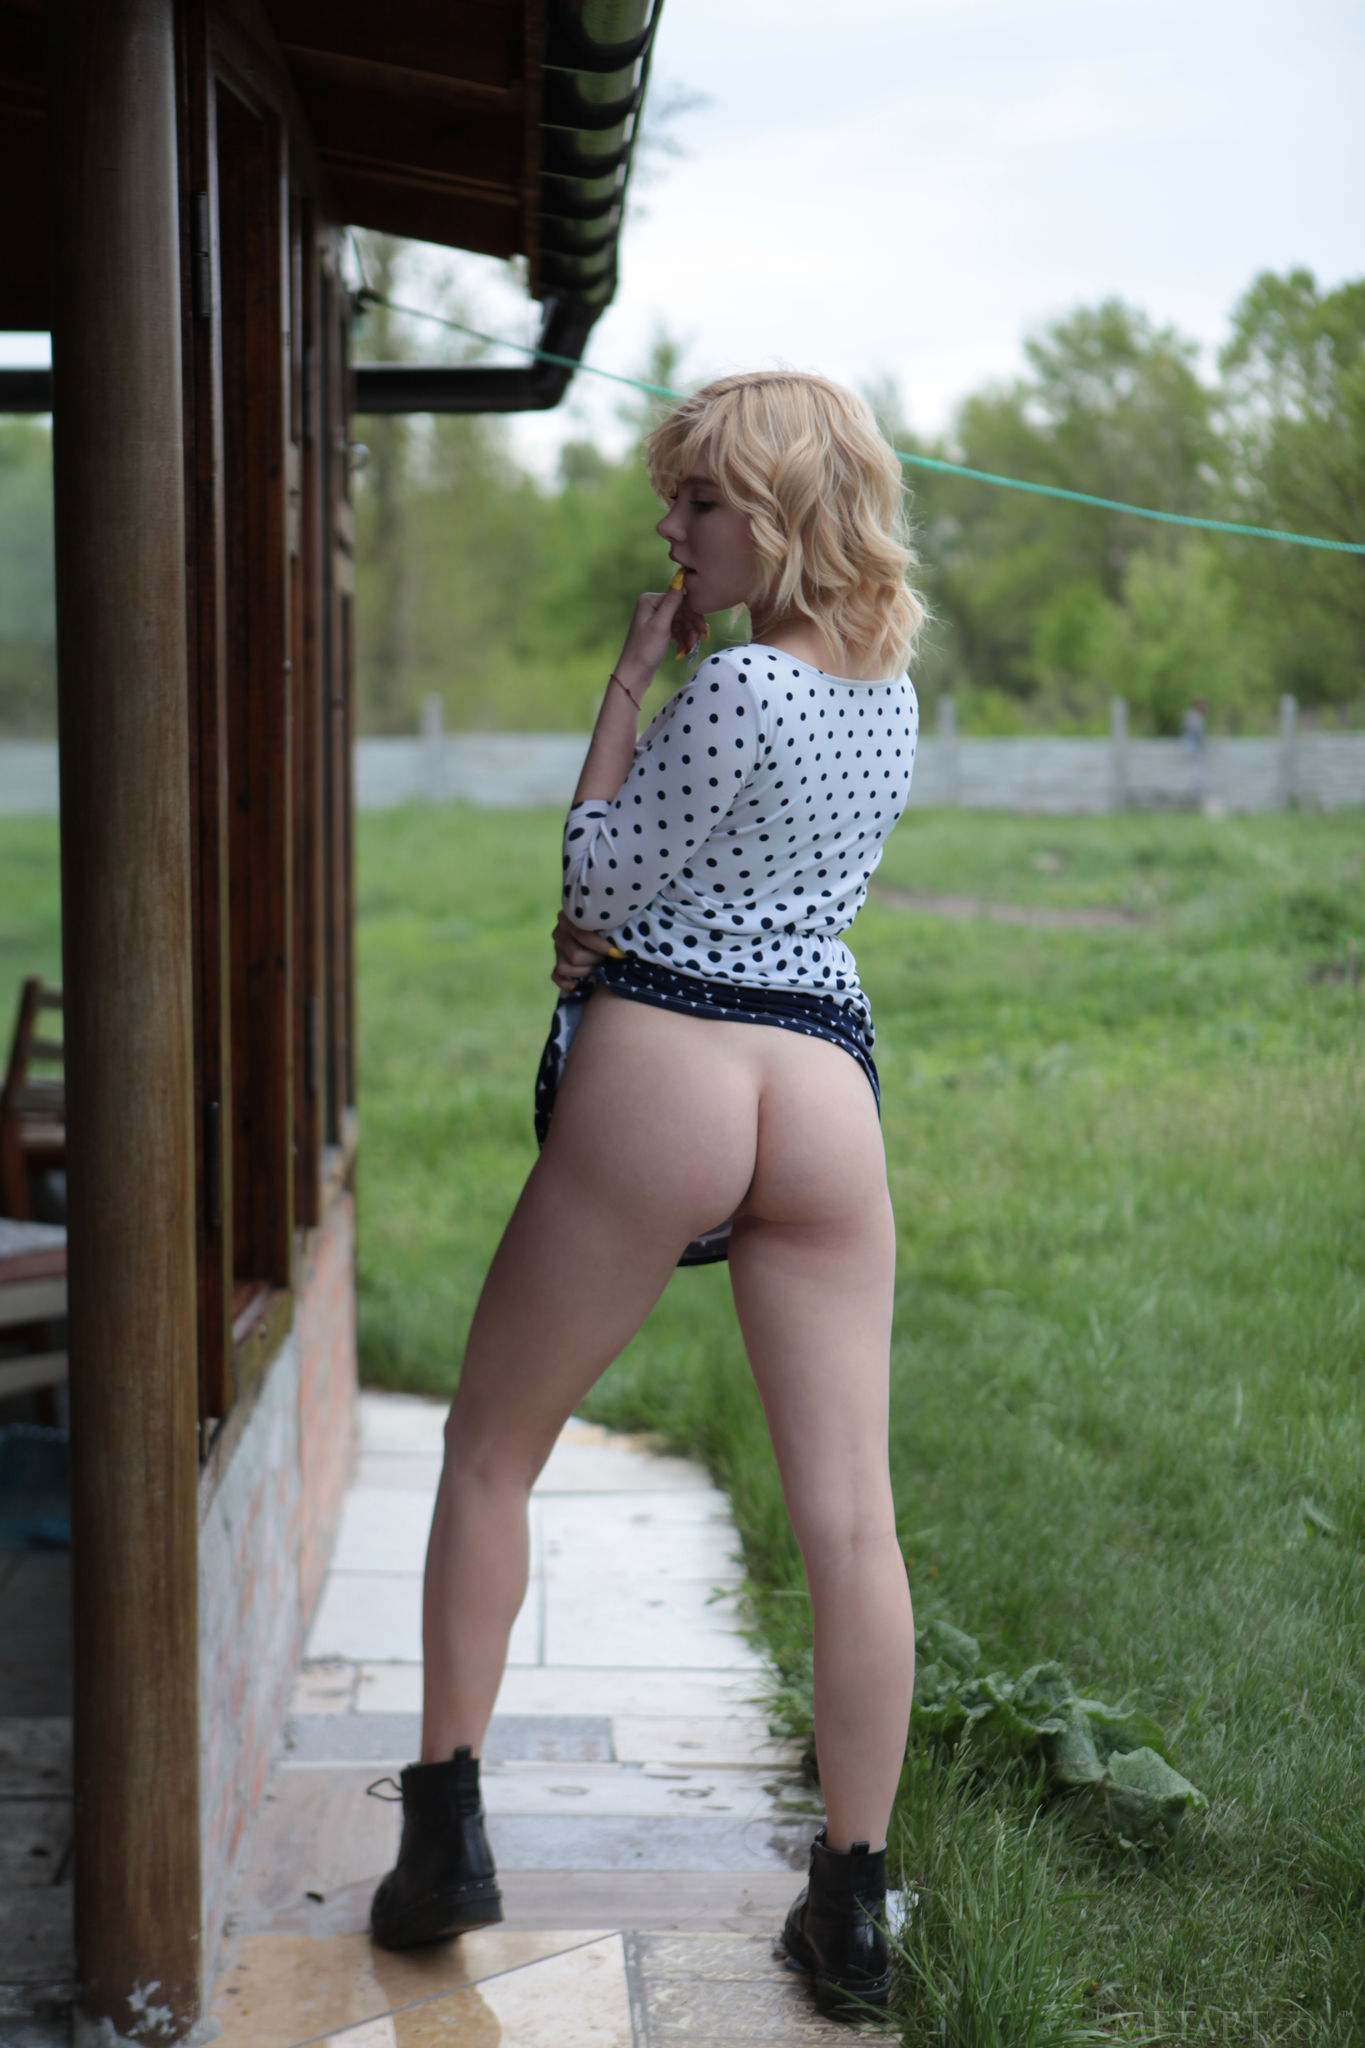 The Blue-eyed Ukrainian Beauty Is A Natural Exhibitionist 08